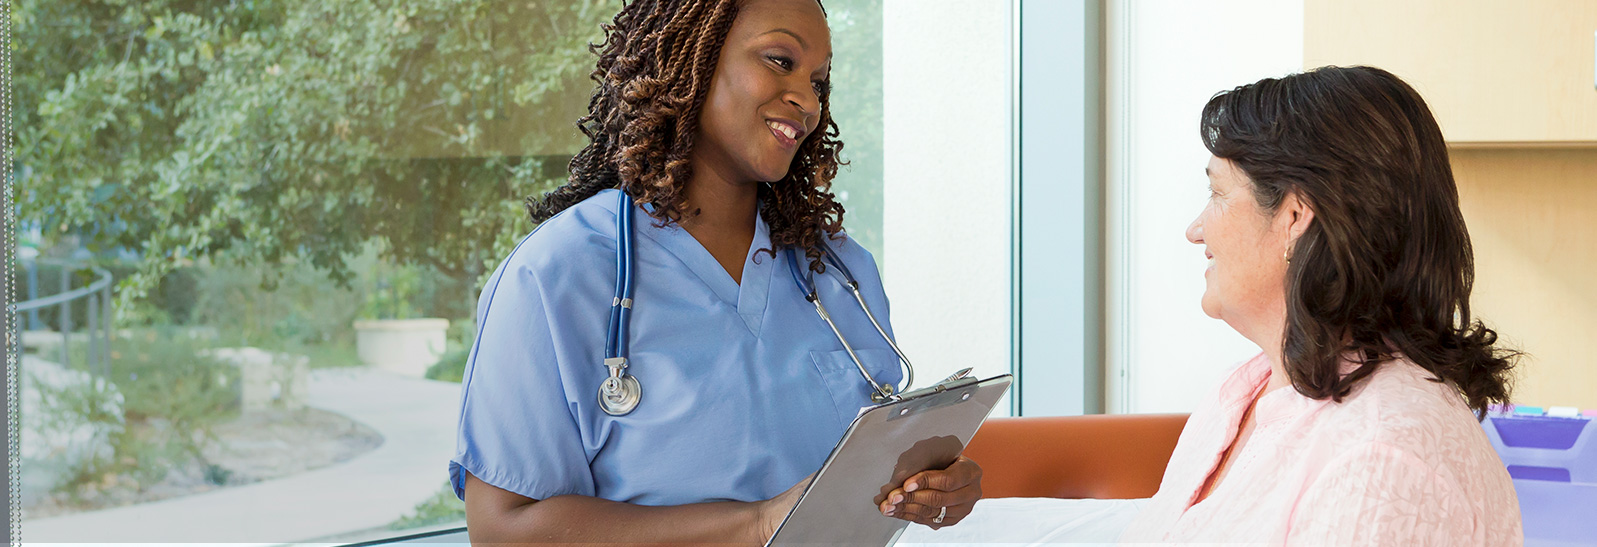 A registered nurse speaking to a patient